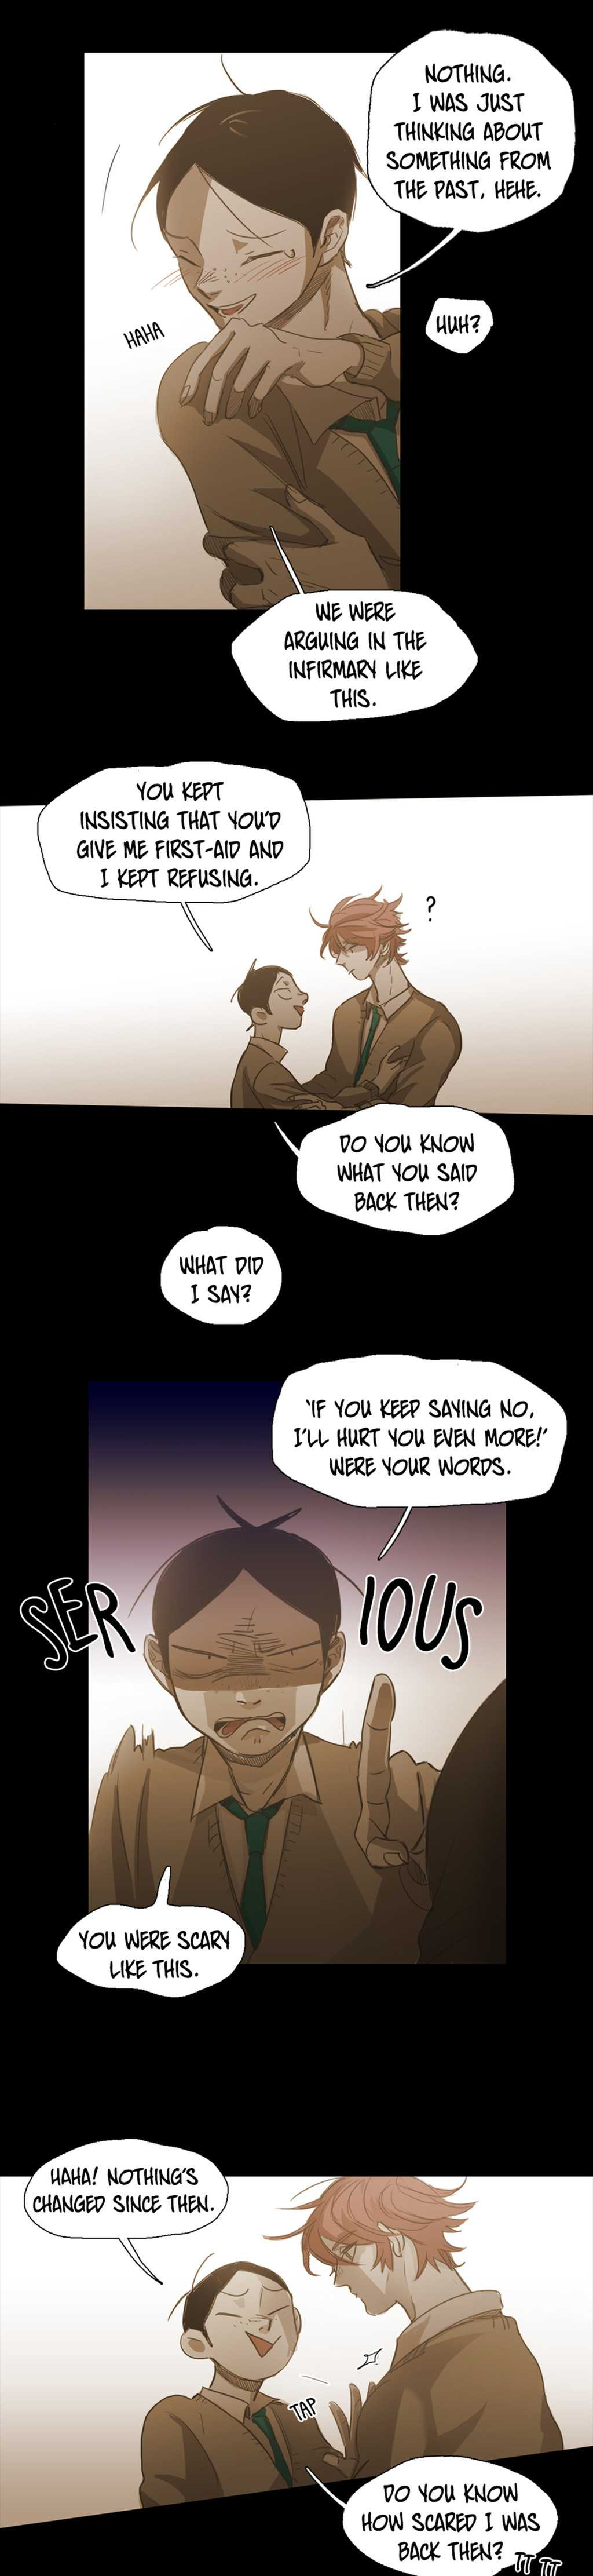 Never Understand - Chapter 66